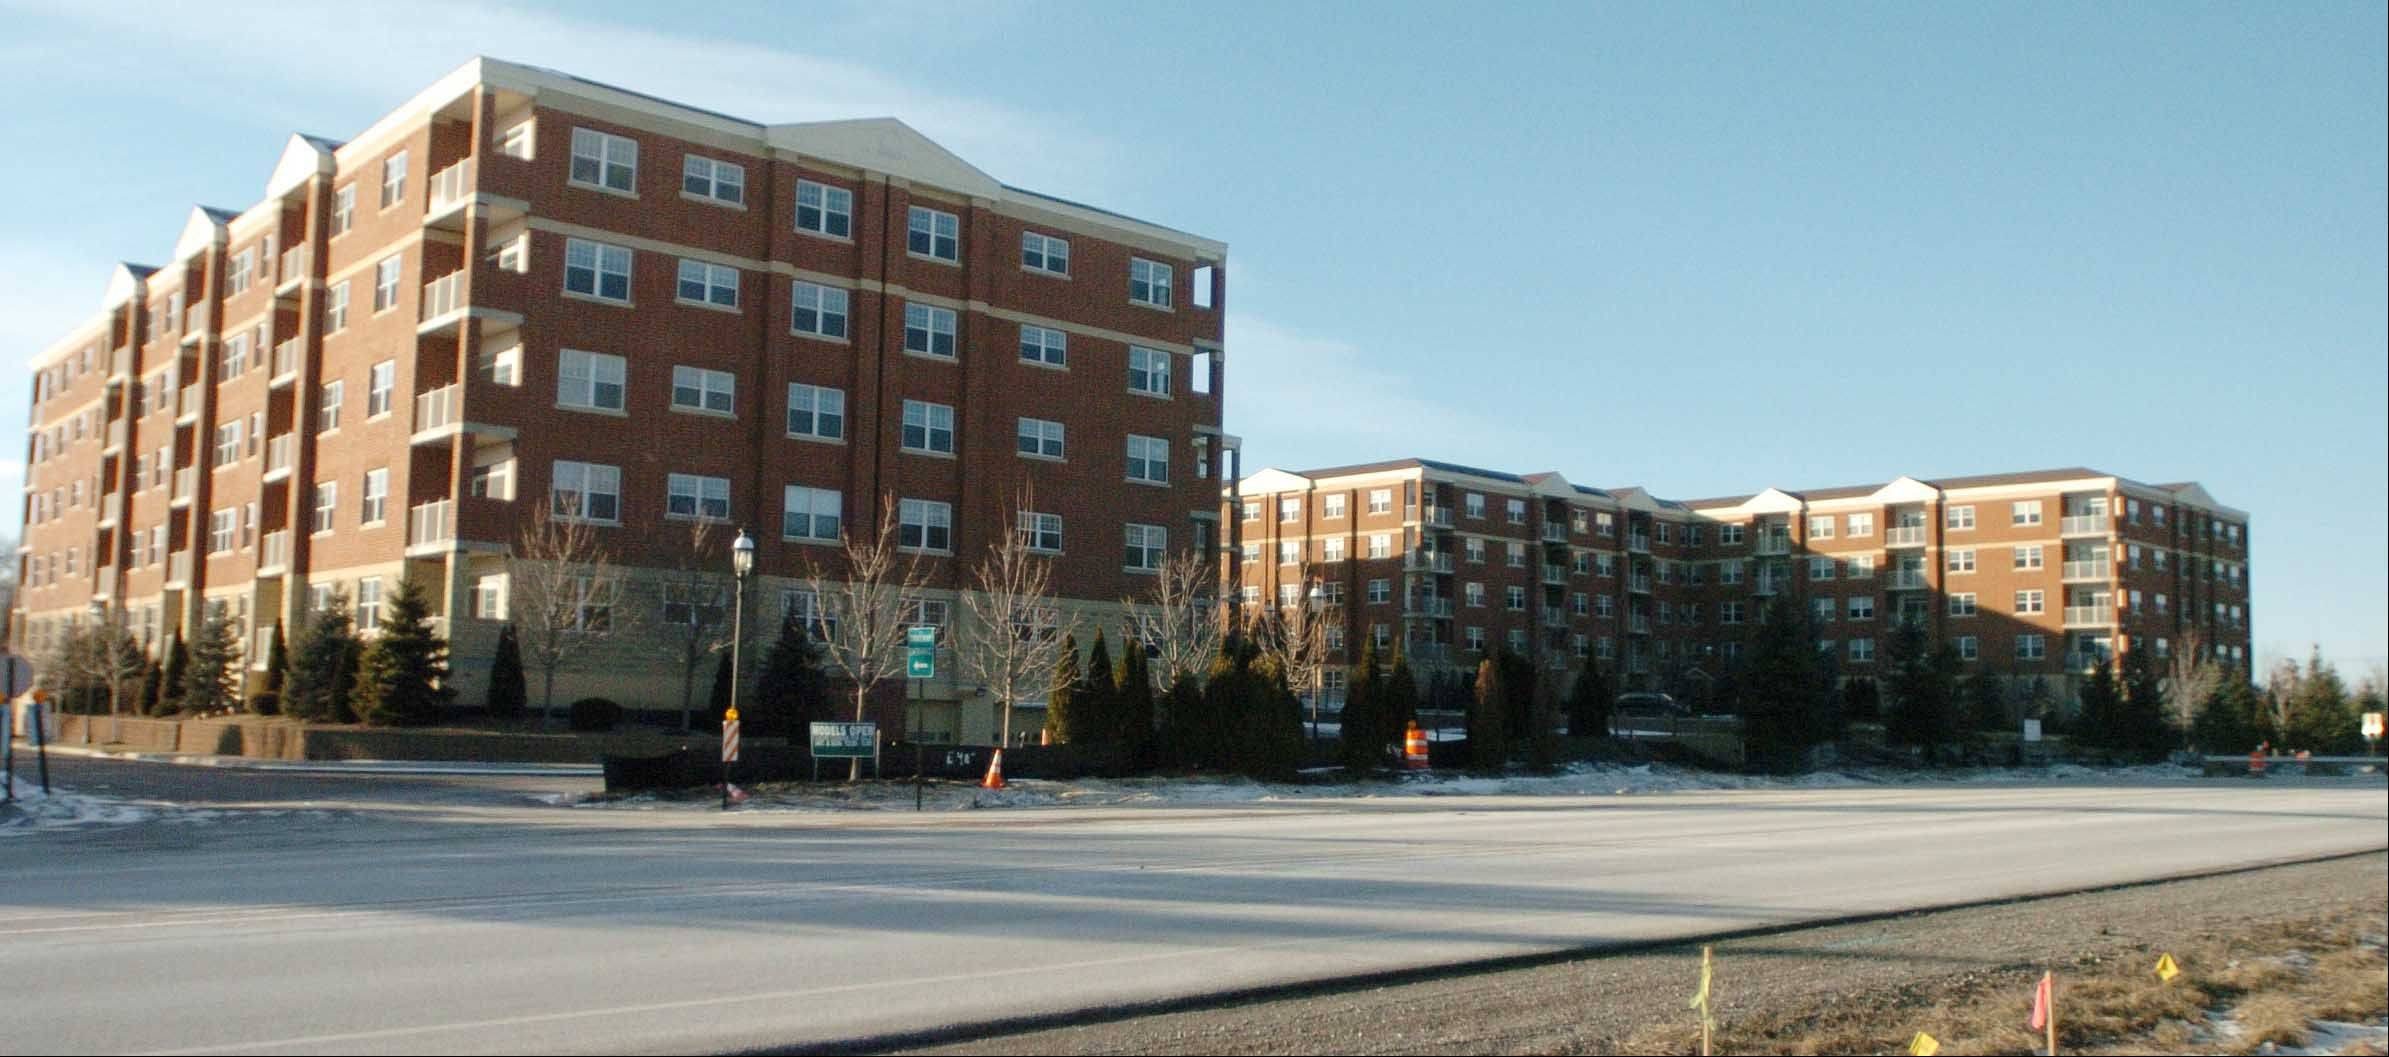 Itasca approves reverse condo conversion